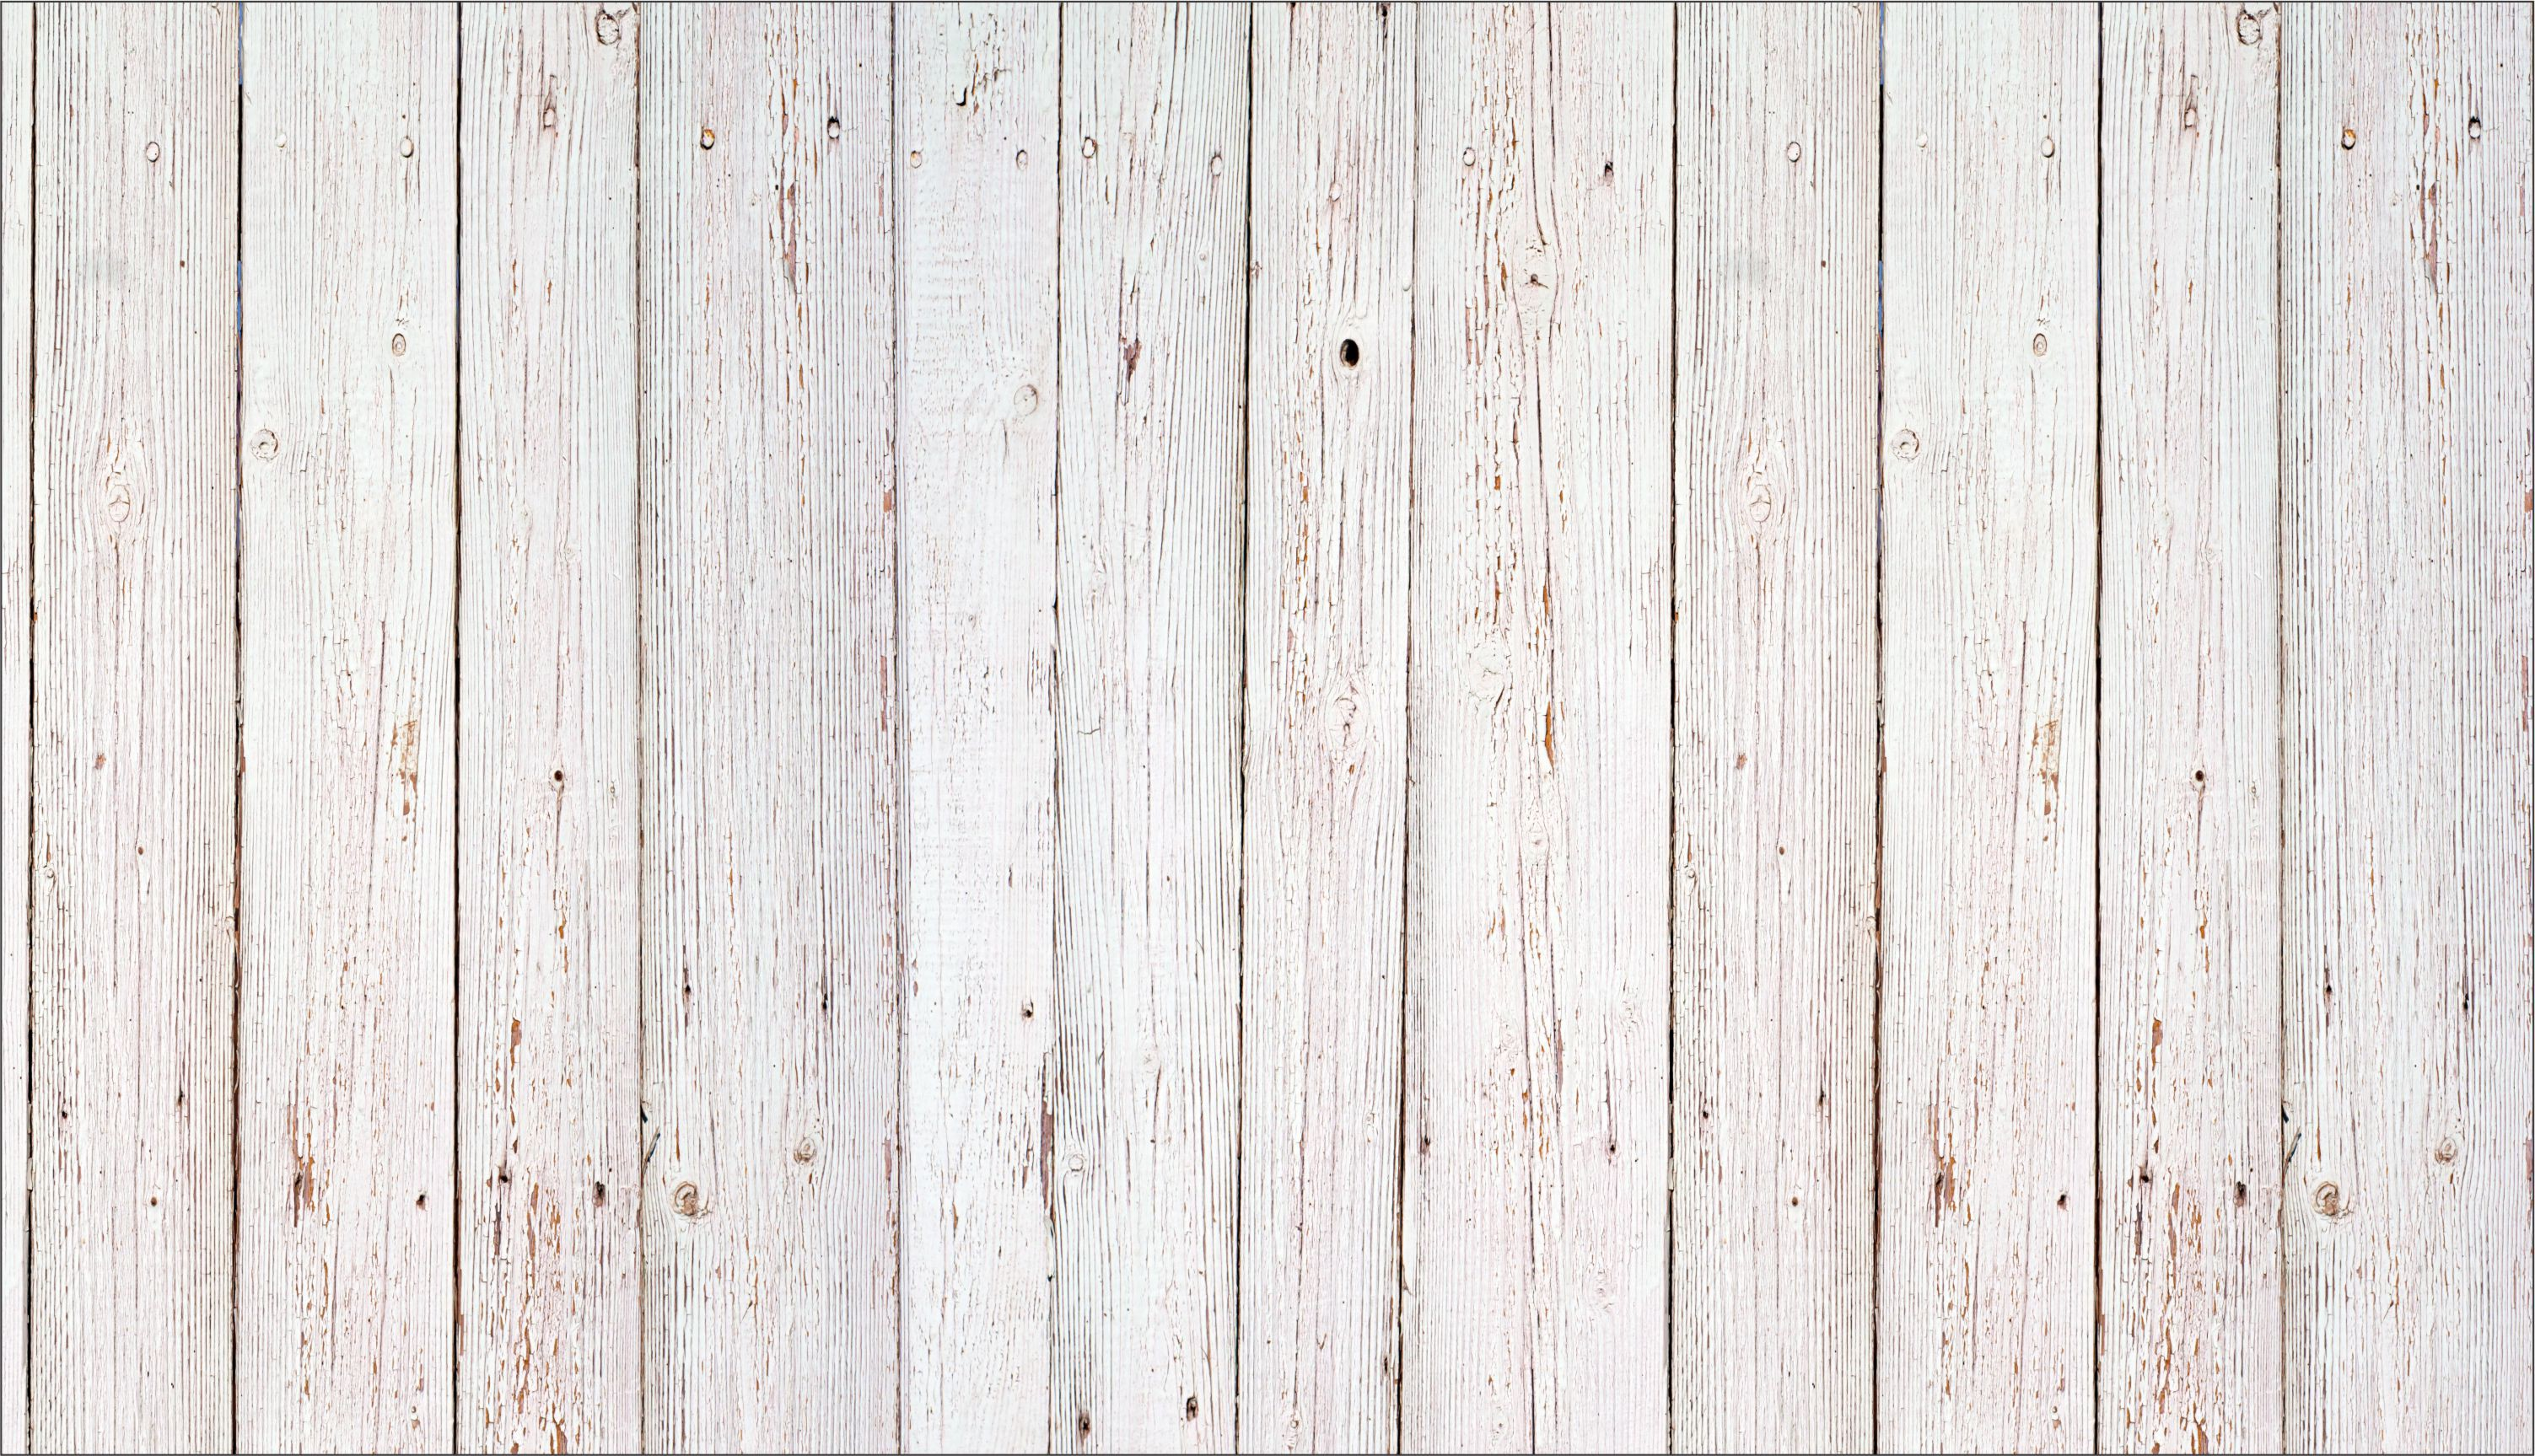 Rustic Barn Wood Background 183 '� Download Free Beautiful